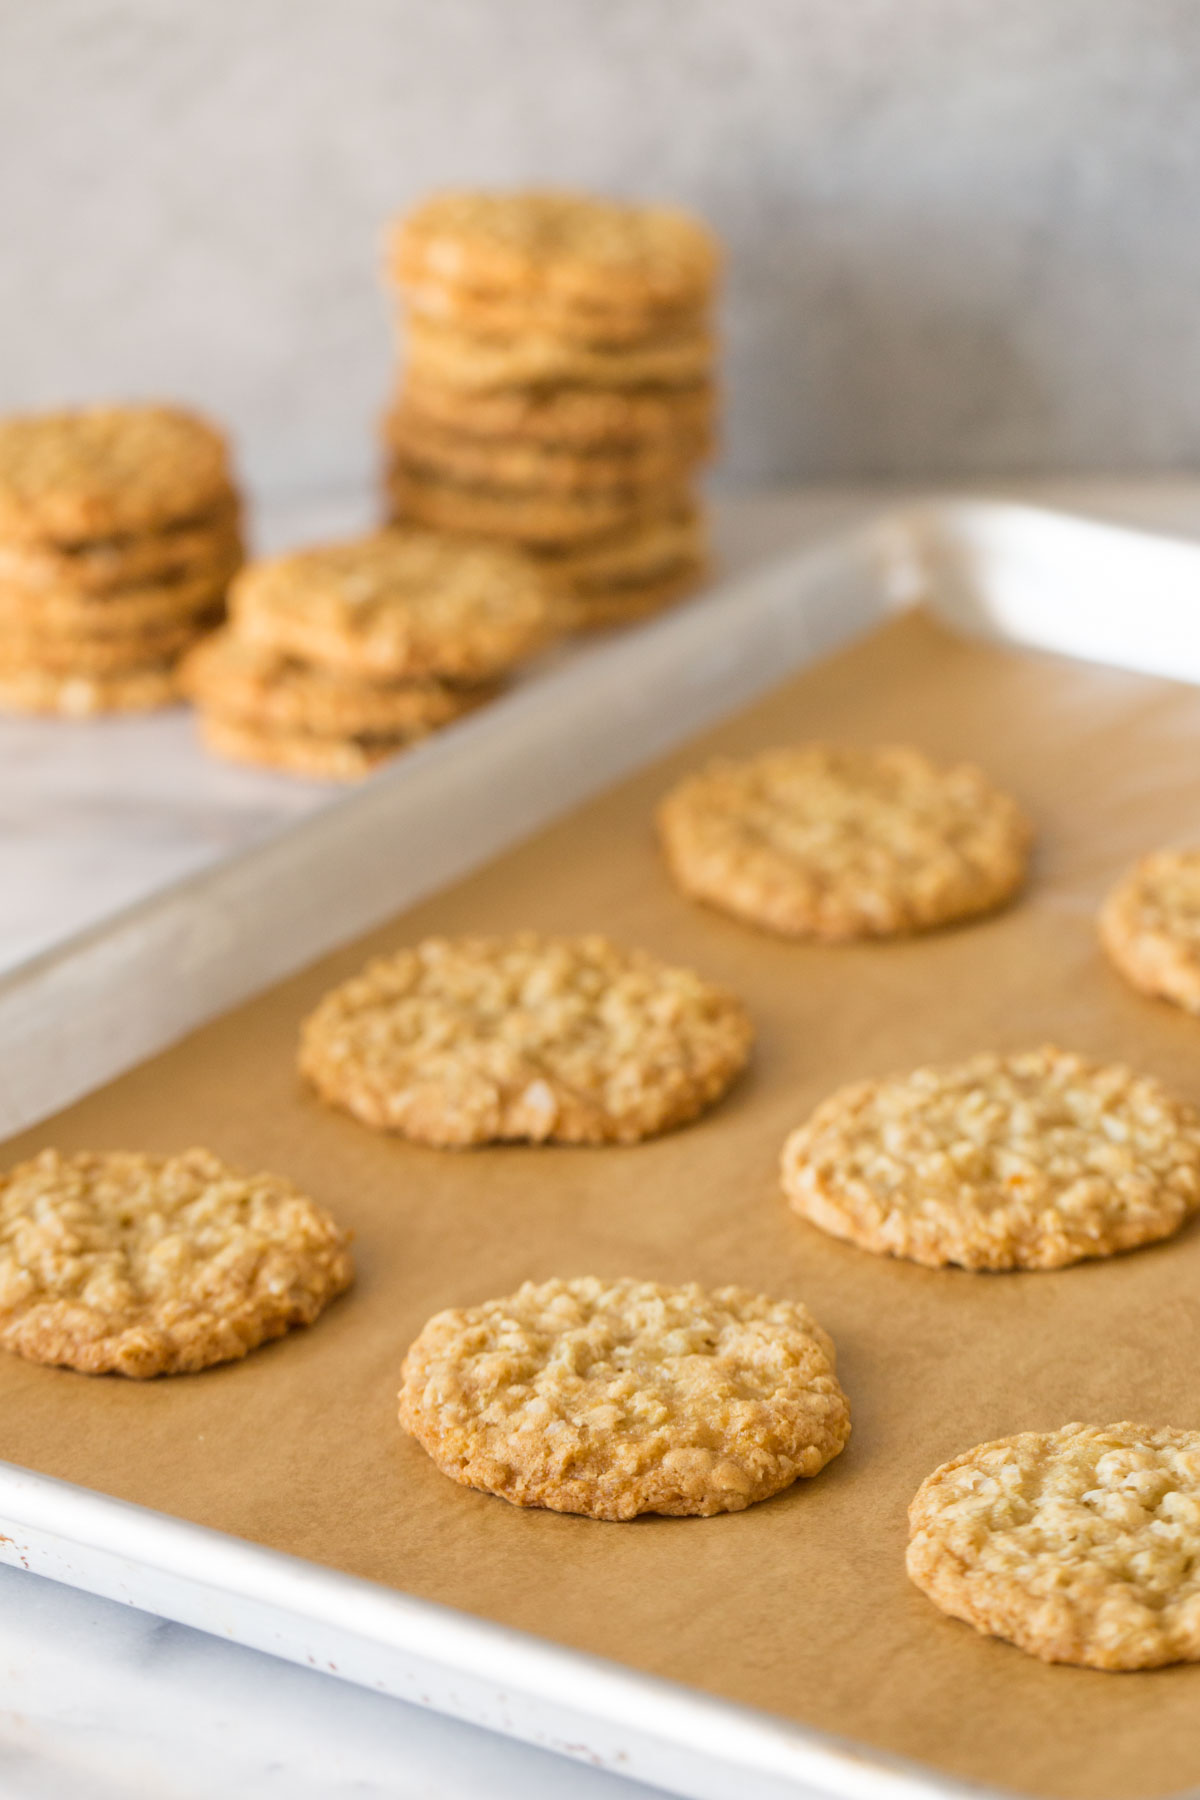 Buttery Coconut Oatmeal Cookies on a parchment paper lined baking sheet, with stacks of Buttery Coconut Oatmeal Cookies in the background.